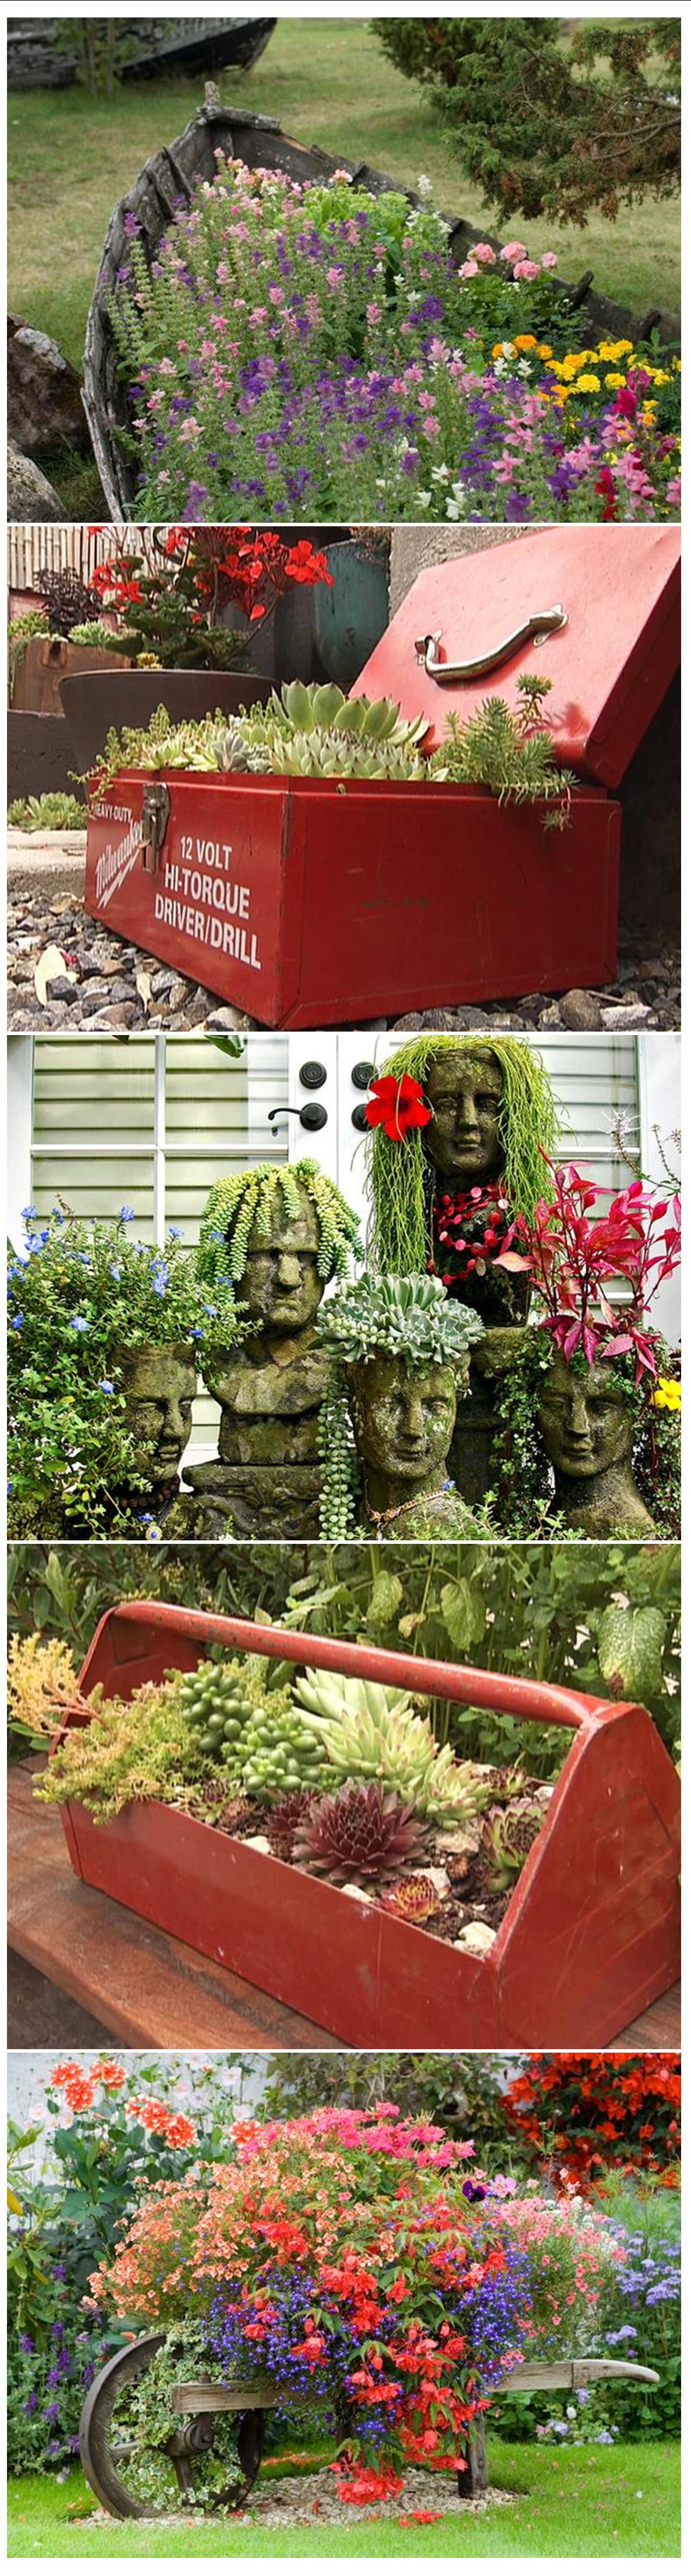 13 Unusual And Upcycled Container Gardens Garden Ideas 400 x 300